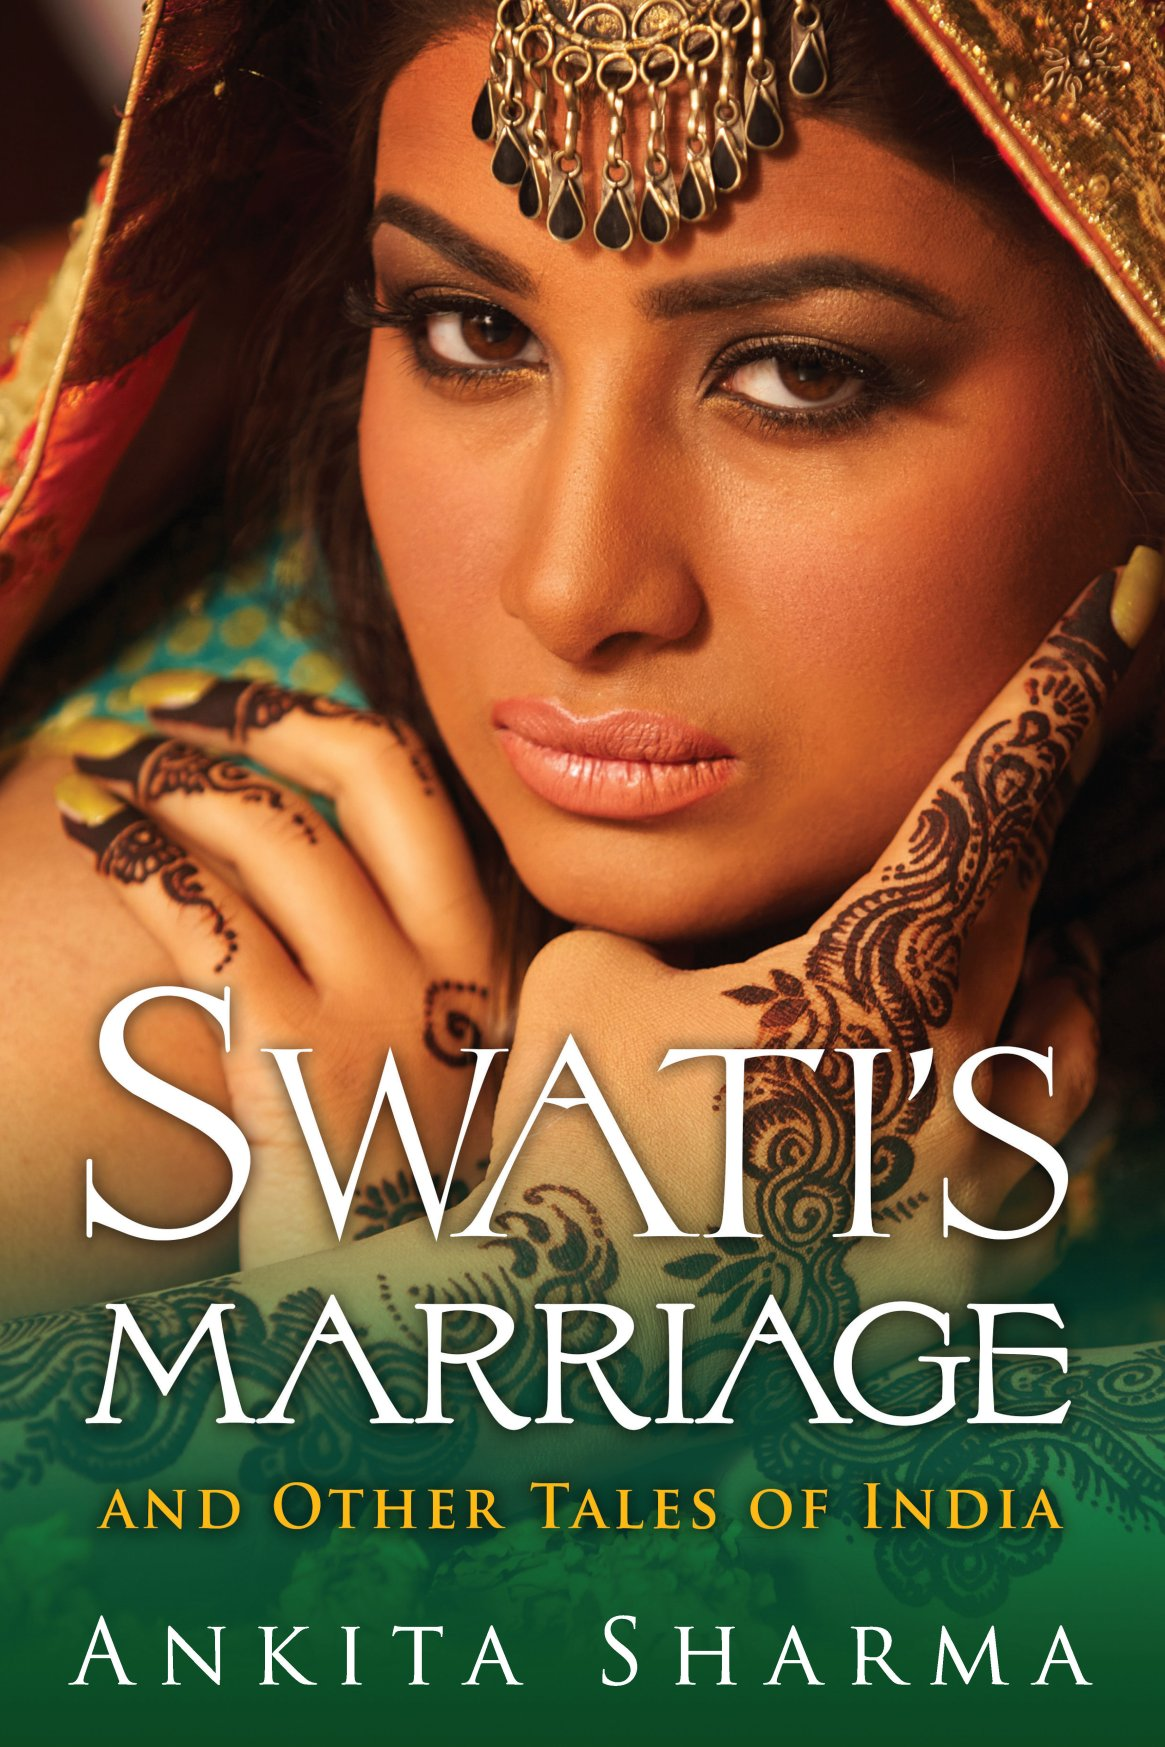 Swati's Marriage and Other Tales of India 978-1-61599-287-4